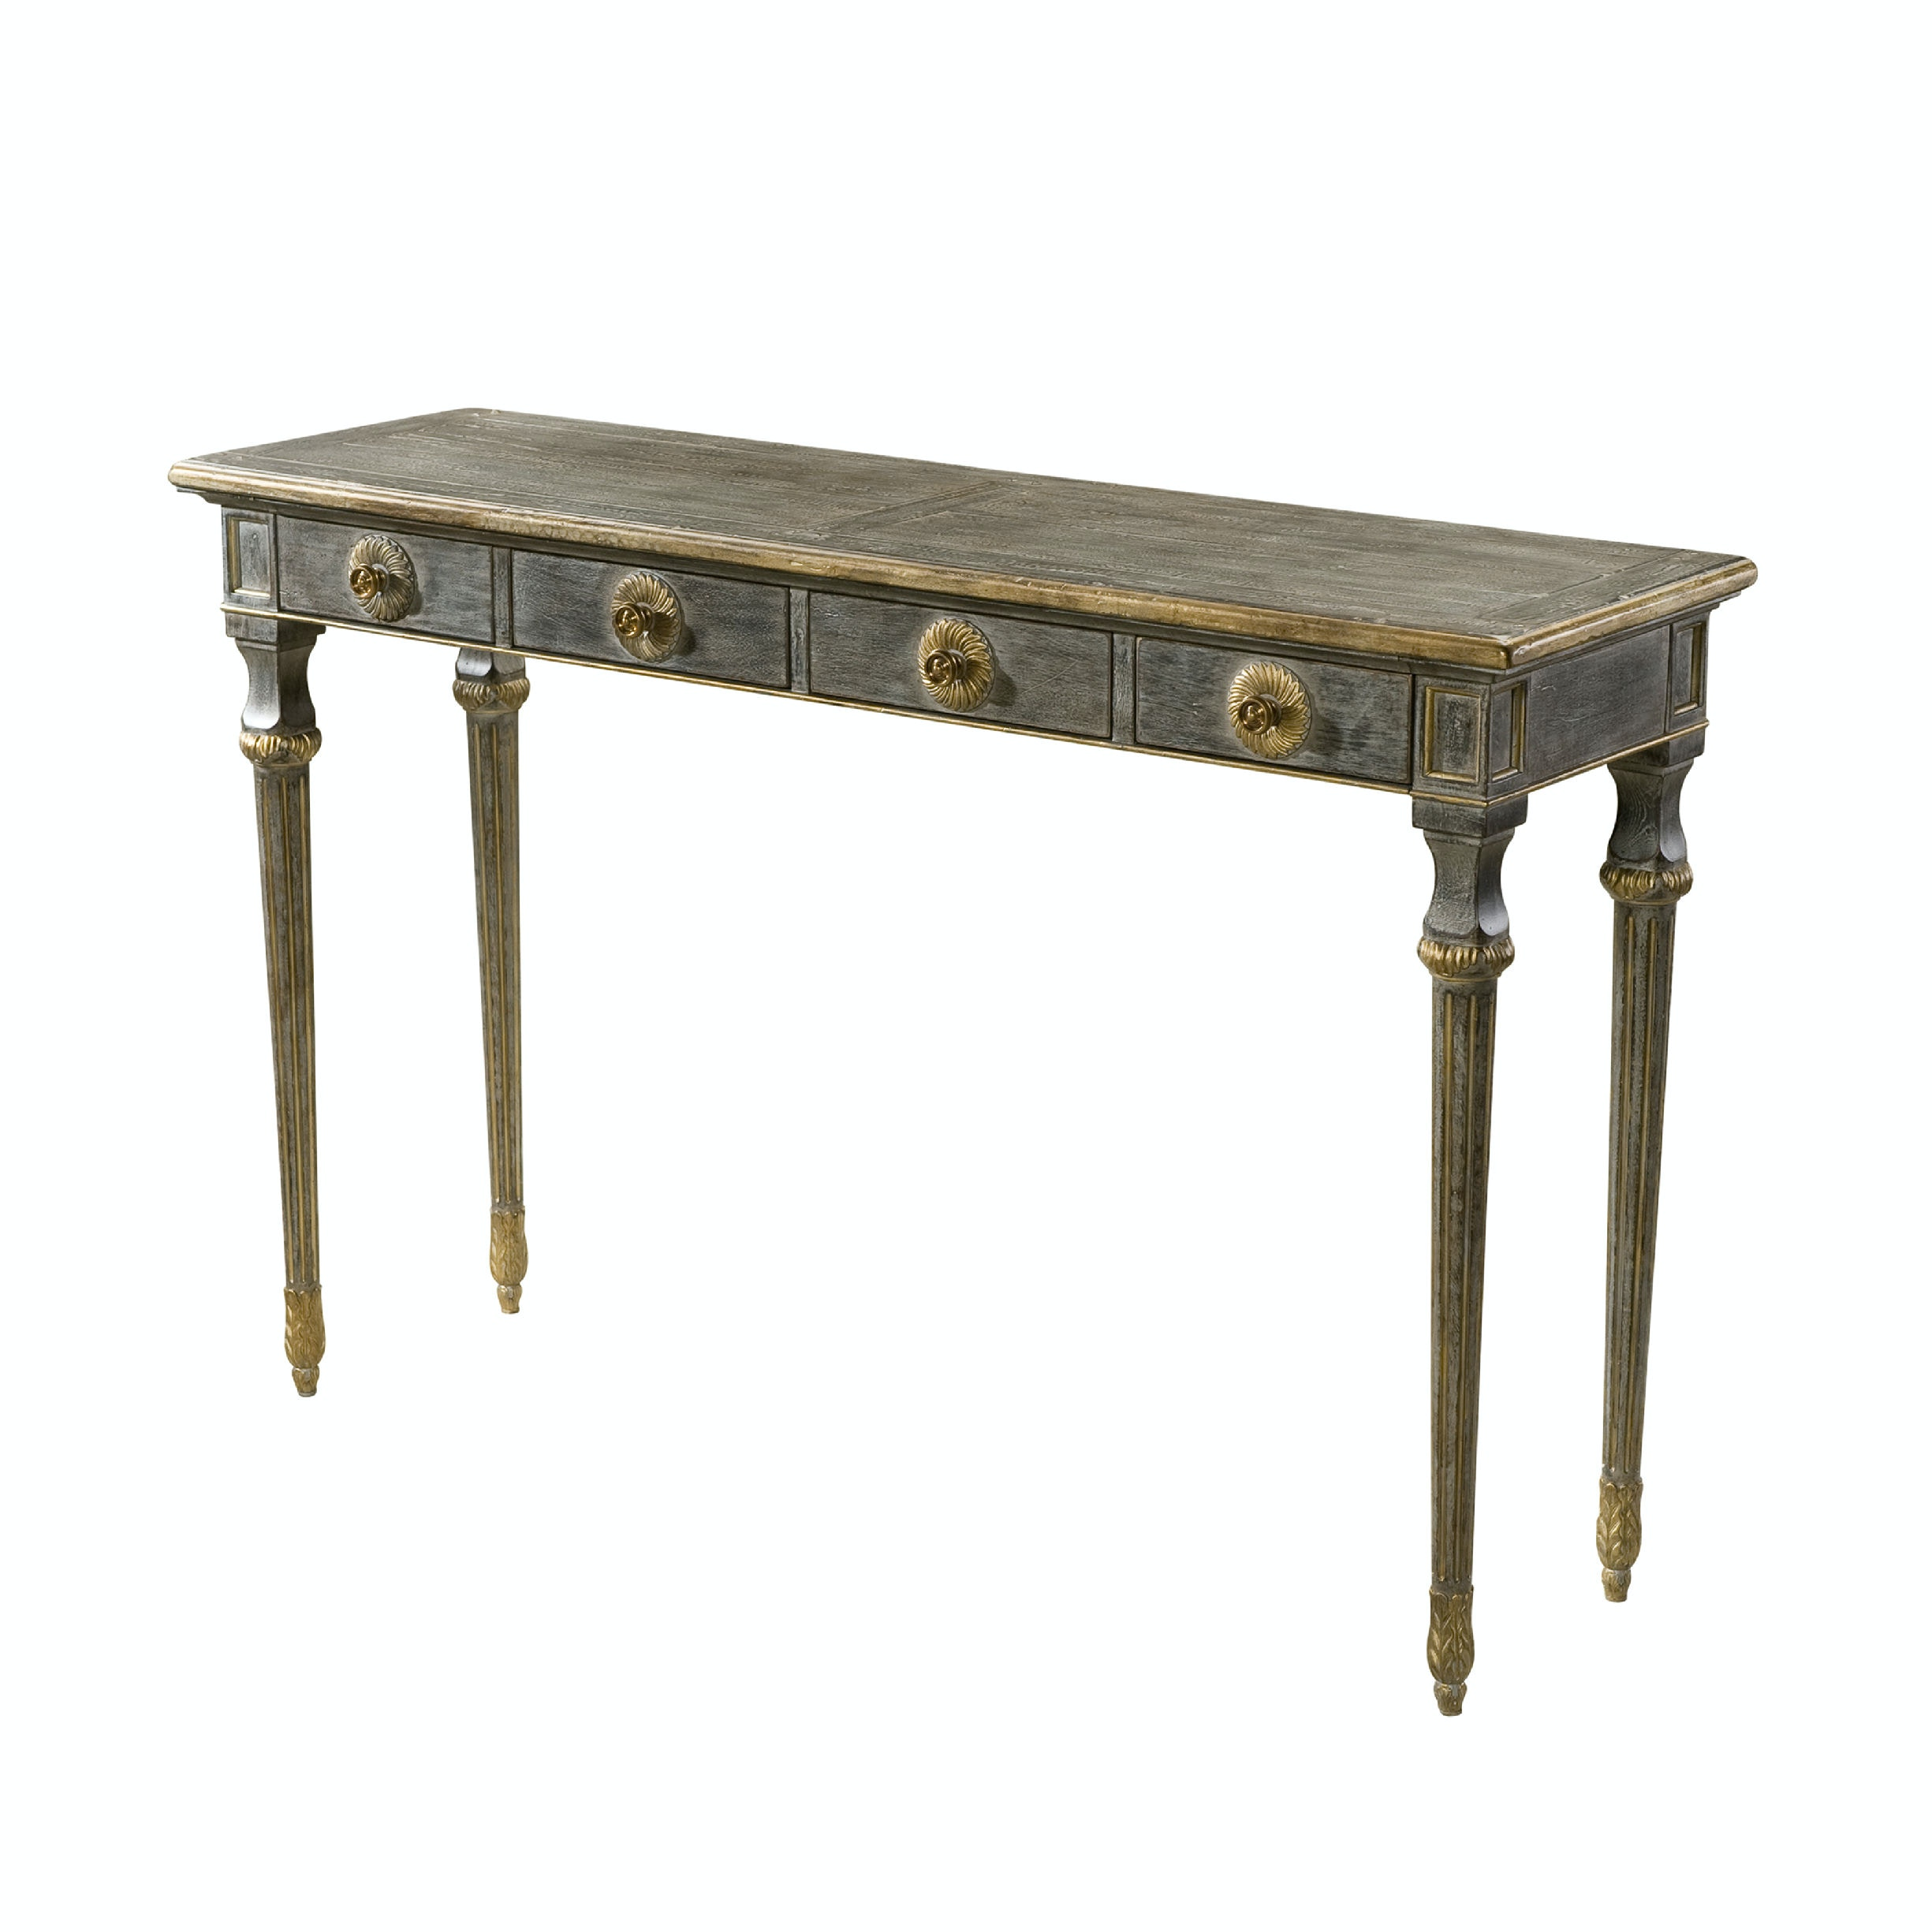 Furniture Consignment Asheville Nc ... English Epitome Console 5302-093 at High Country Furniture & Design